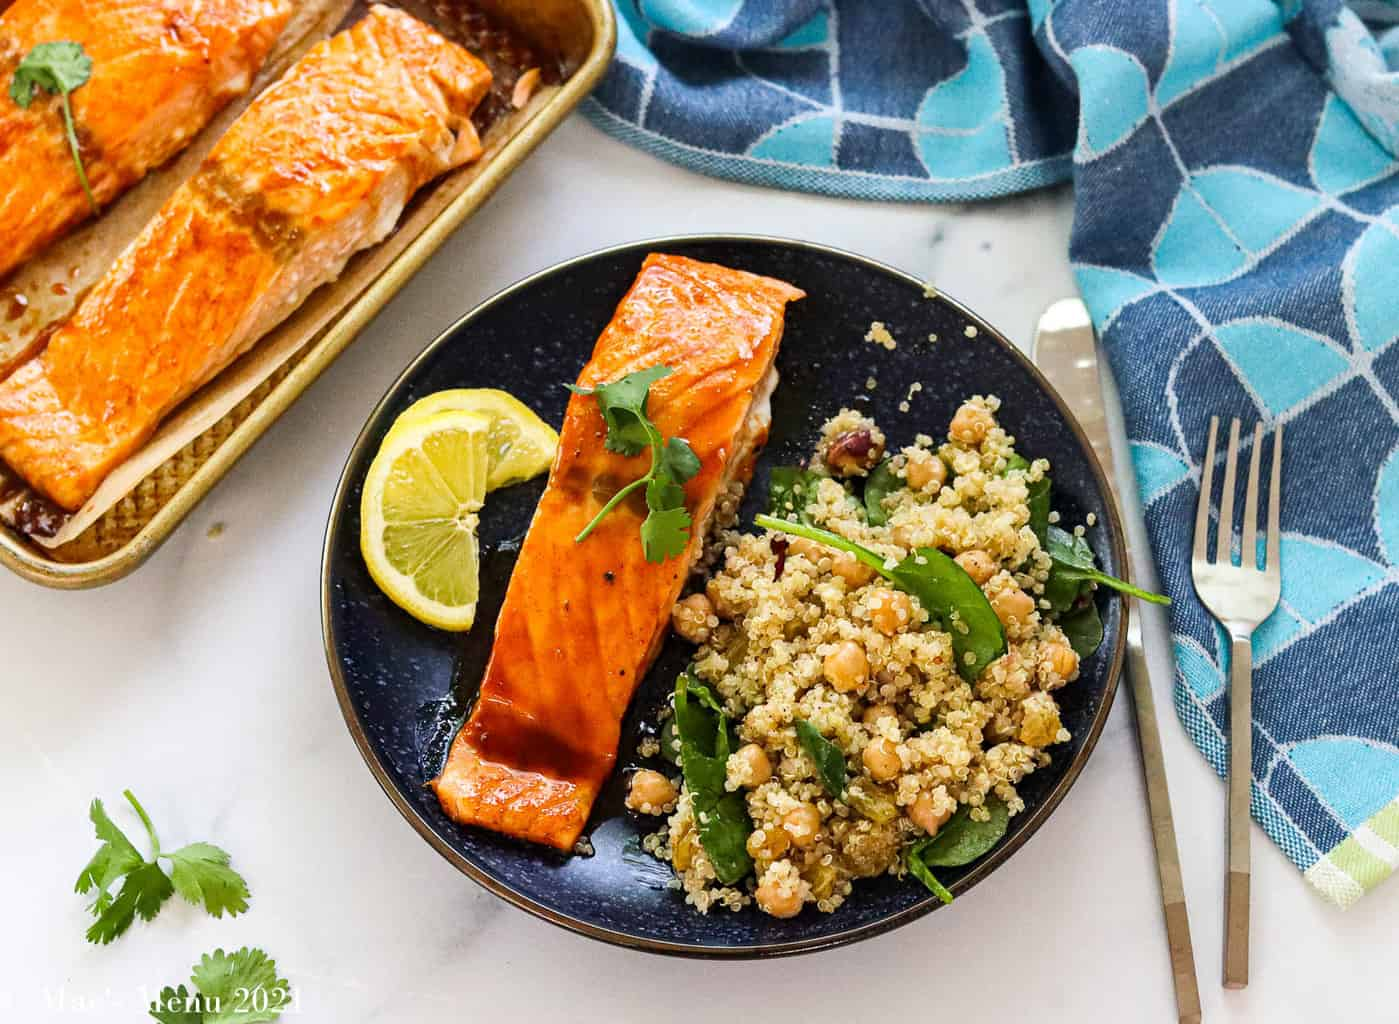 An overhead shot of a plate of bourbon salmon and a serving of quinoa salad with a tray of salmon in th ebackground